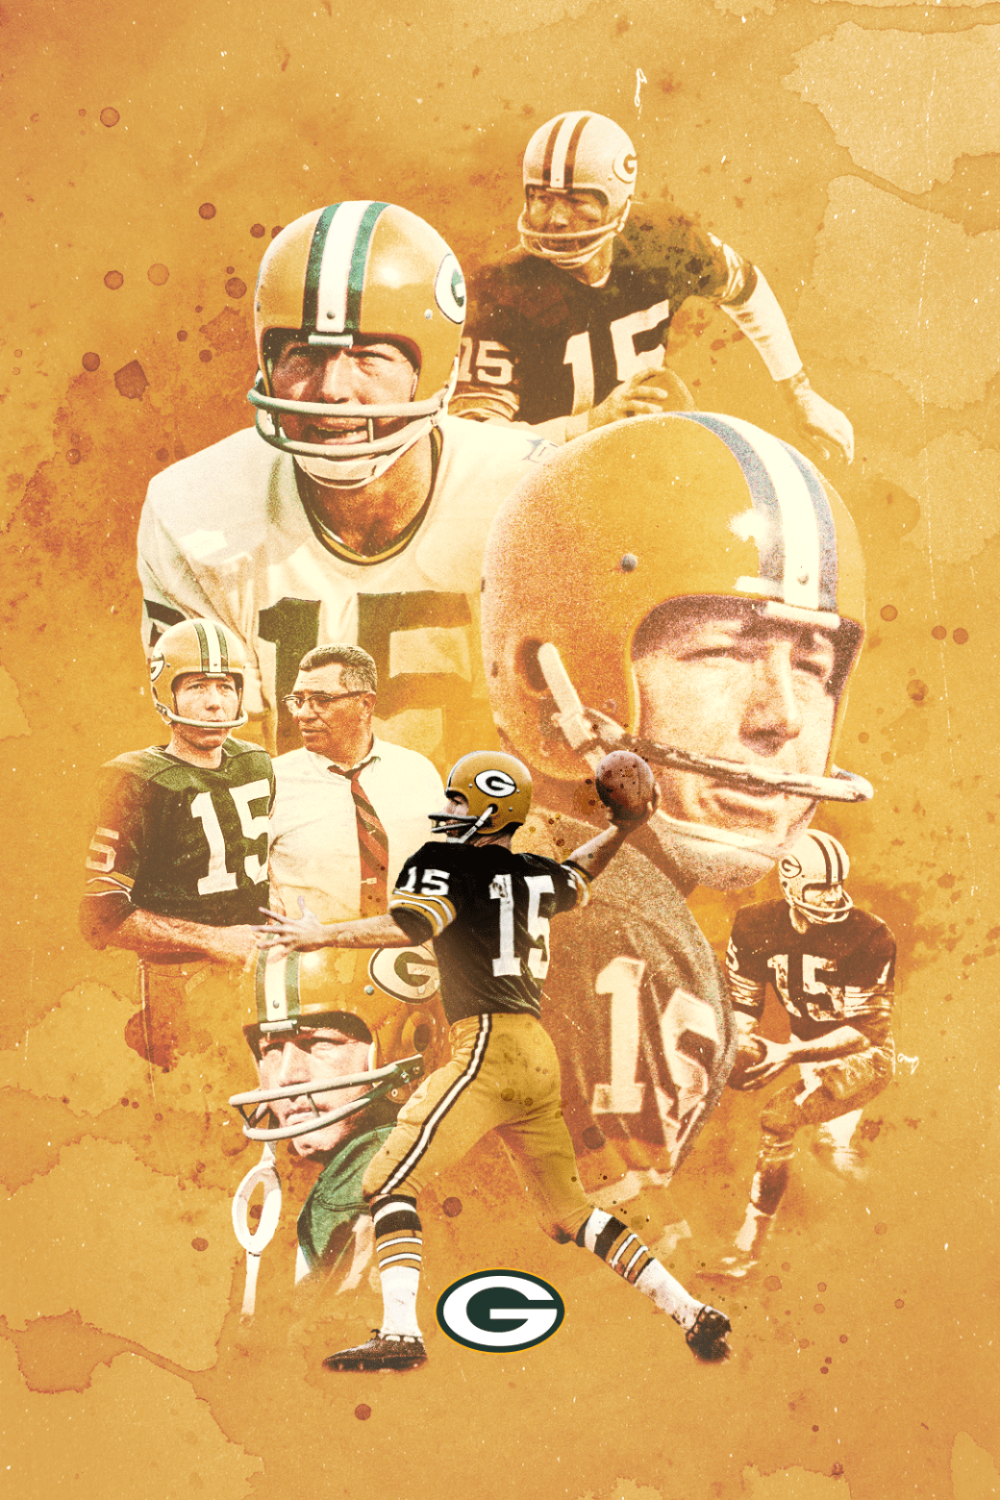 Packers Mobile Wallpapers Green Bay Packers Packers Com Green Bay Packers Art Green Bay Packers History Green Bay Packers Wallpaper